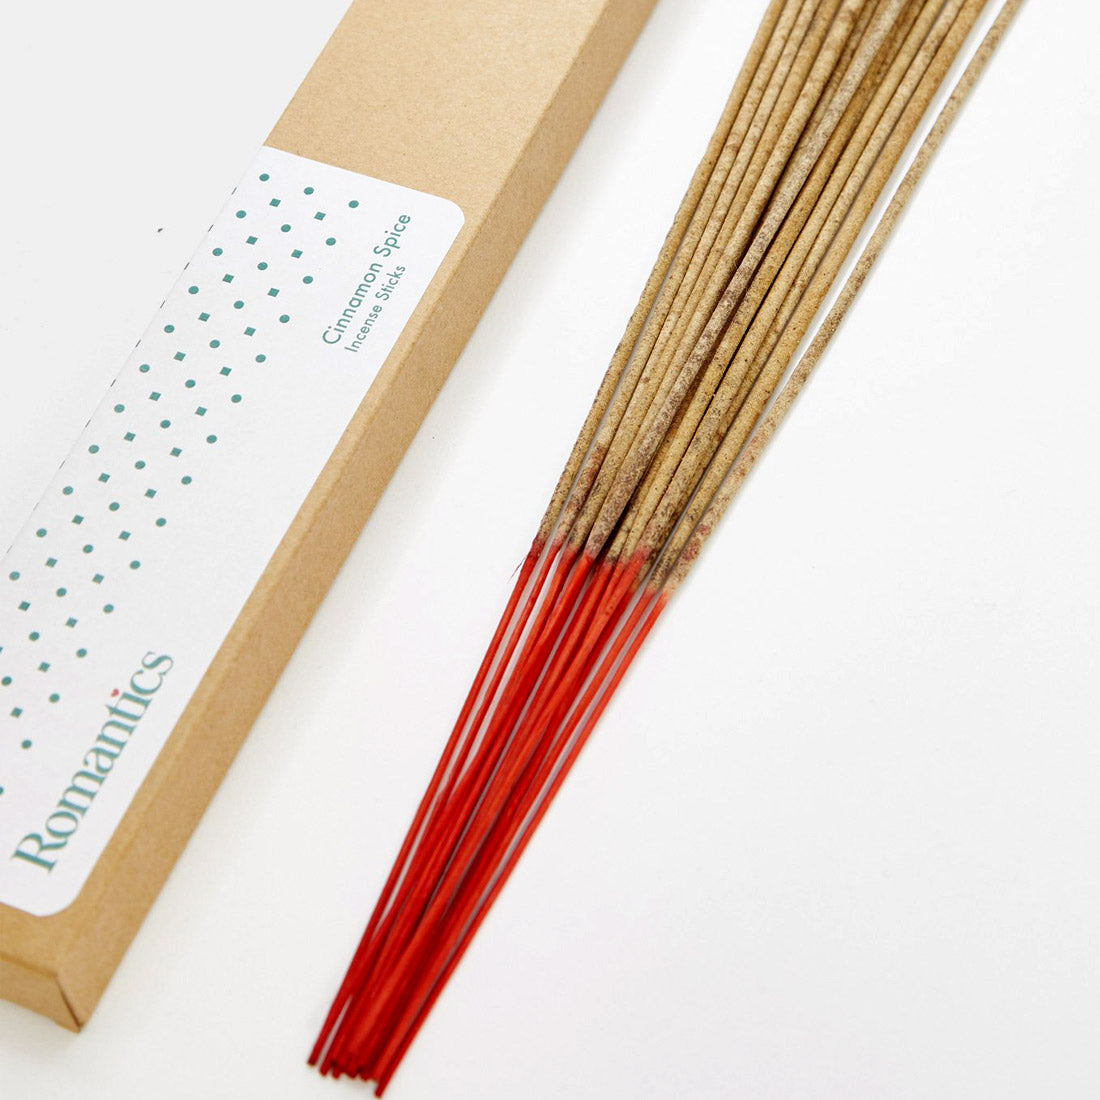 Romantics x Incu Cinnamon Spice Incense Sticks